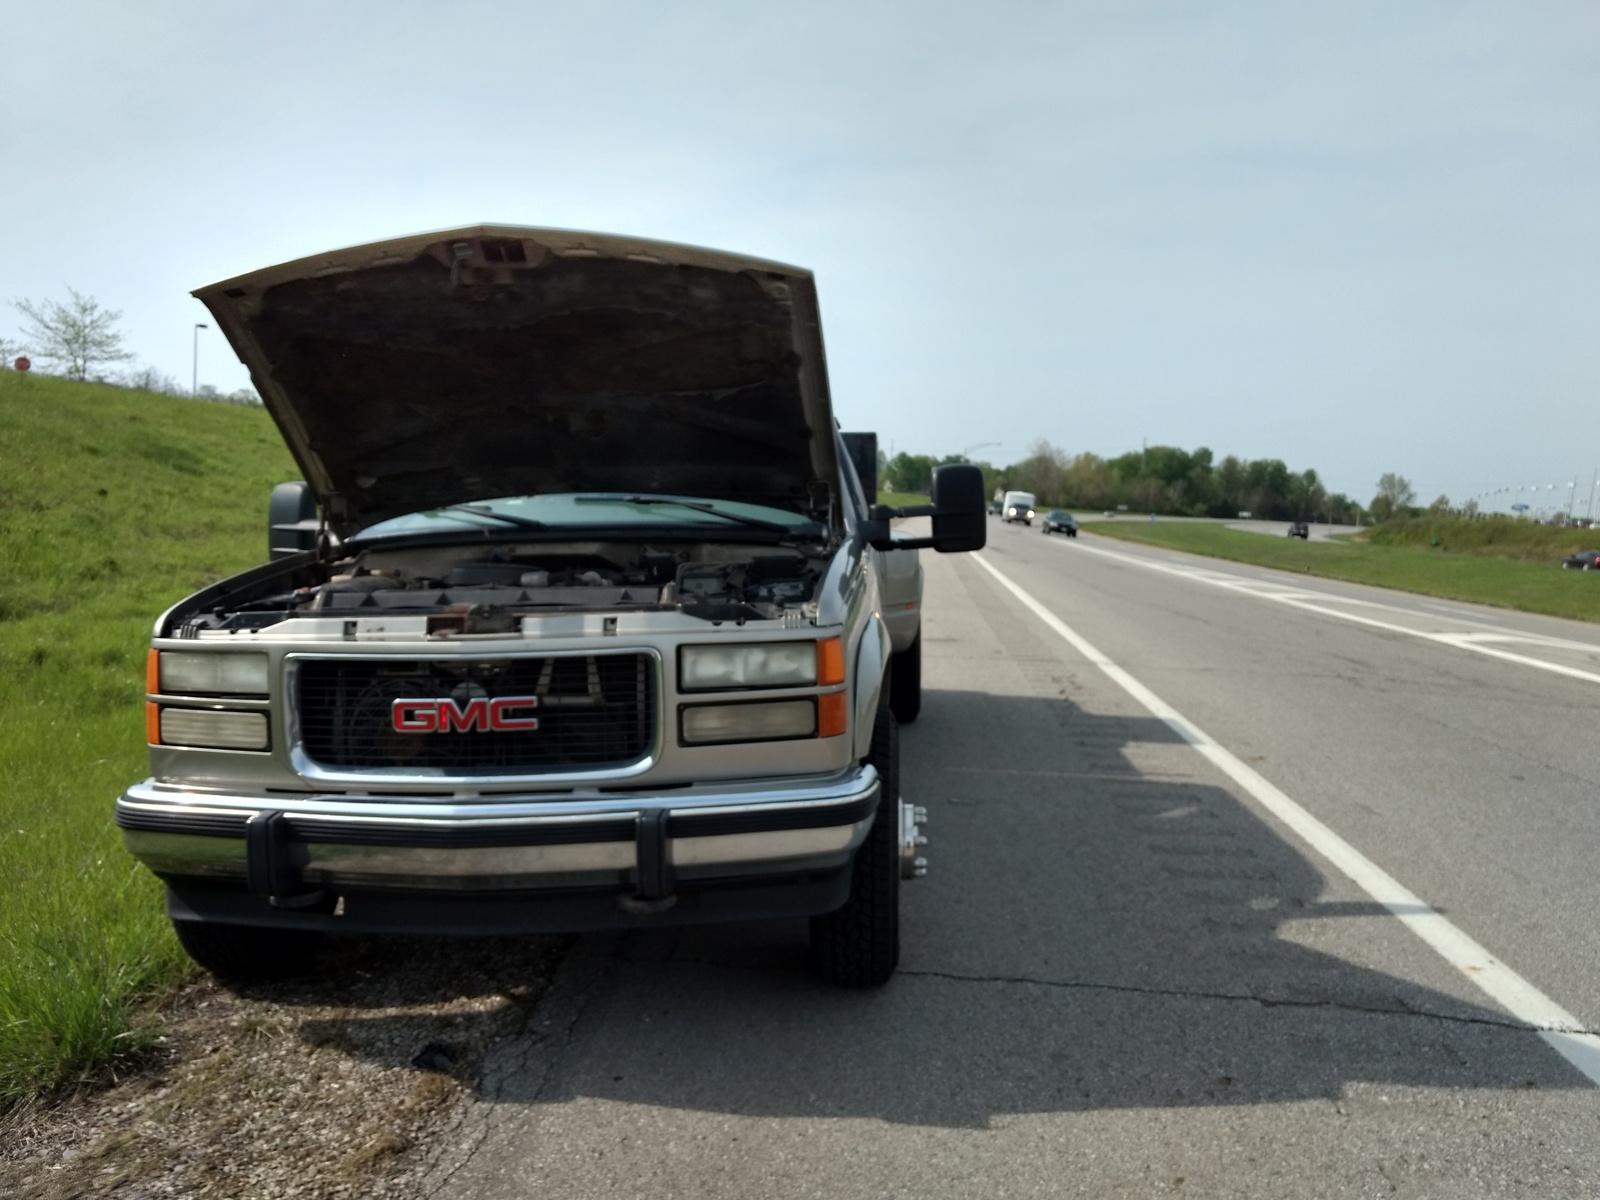 pic 7040915215097267505 1600x1200 gmc sierra 1500 questions truck suddenly stops running, acting  at edmiracle.co